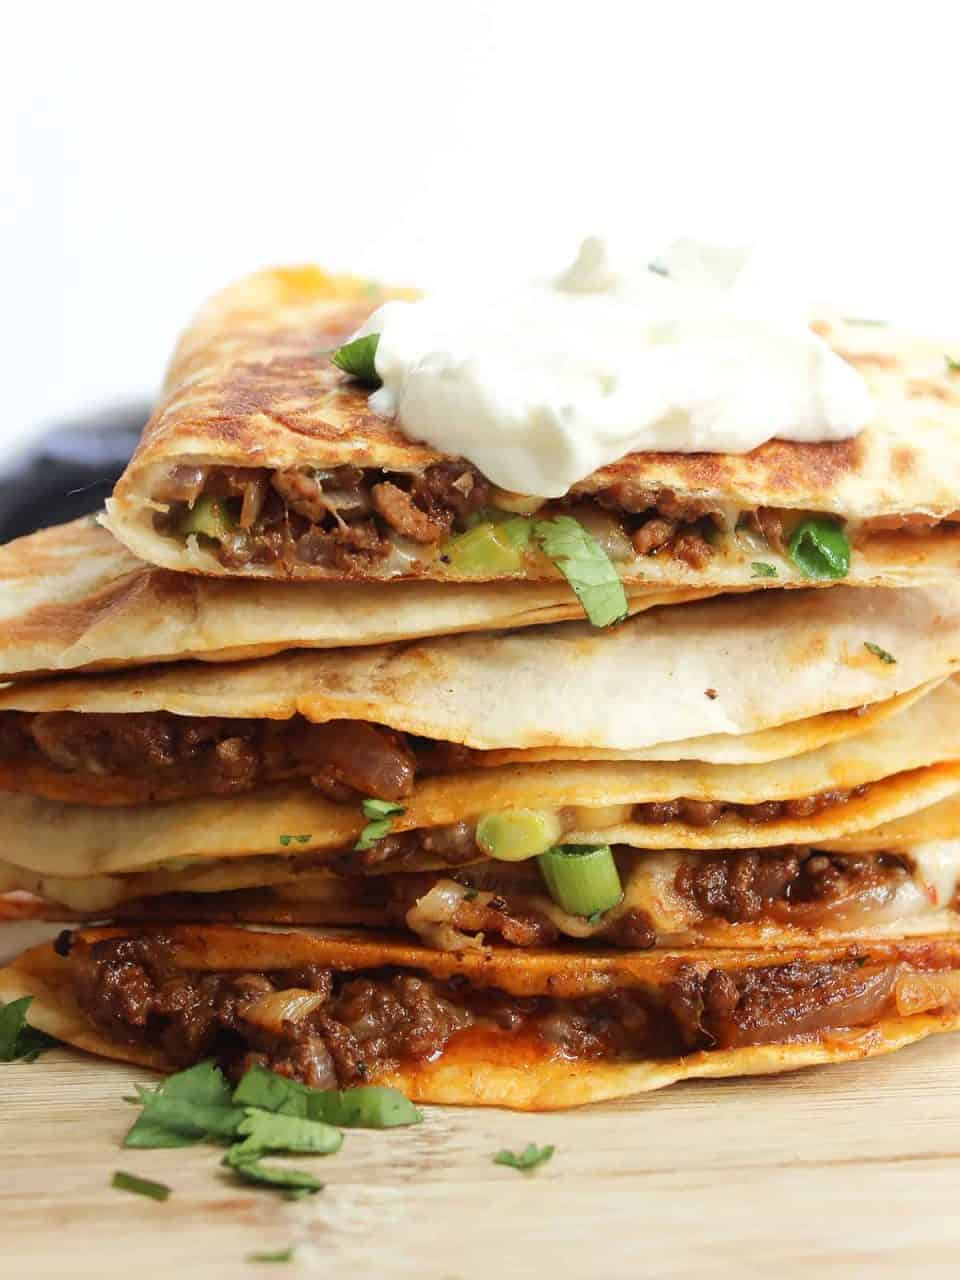 Ground beef quesadillas served with sour cream and fresh cilantro.